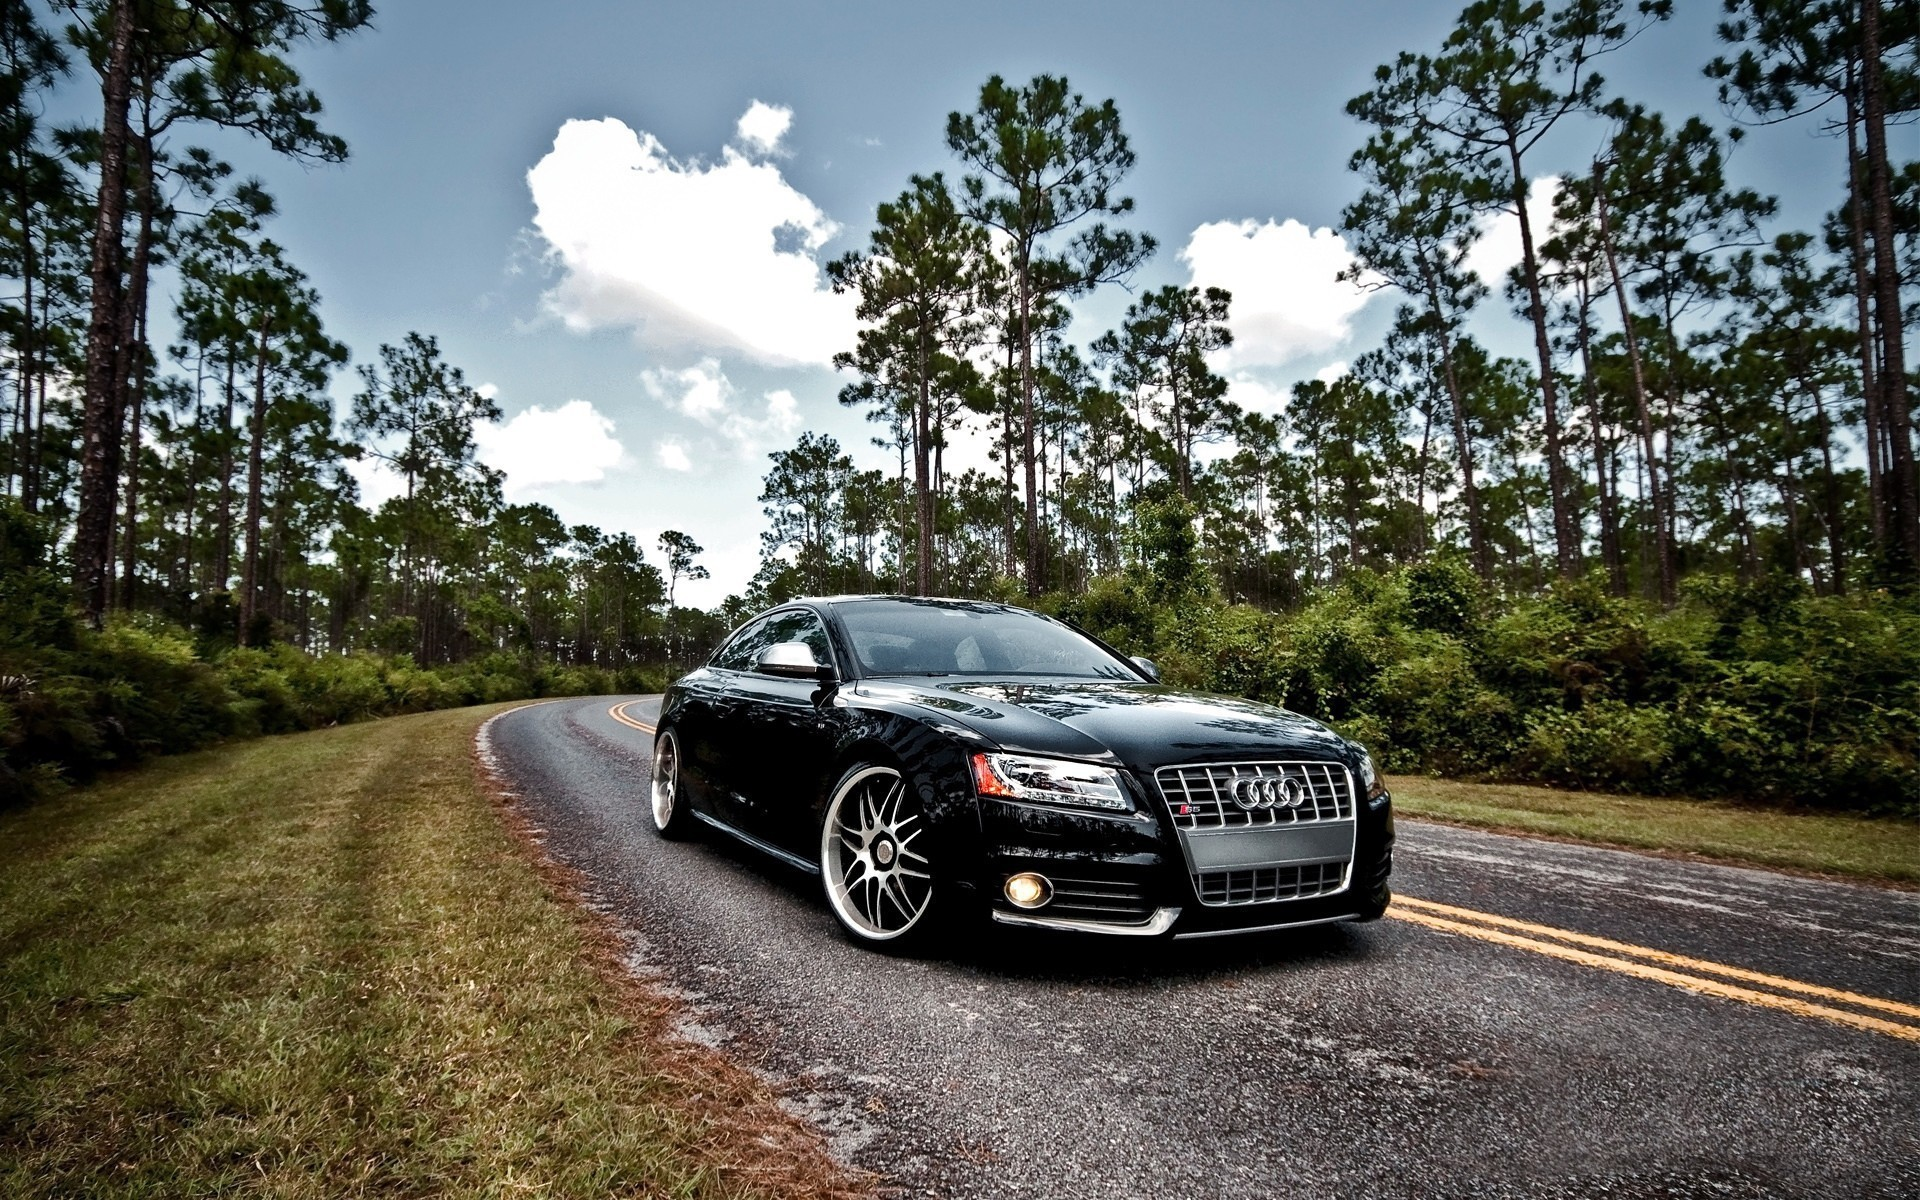 1920x1200 Luxury black Audi S5 on the highway in the woods